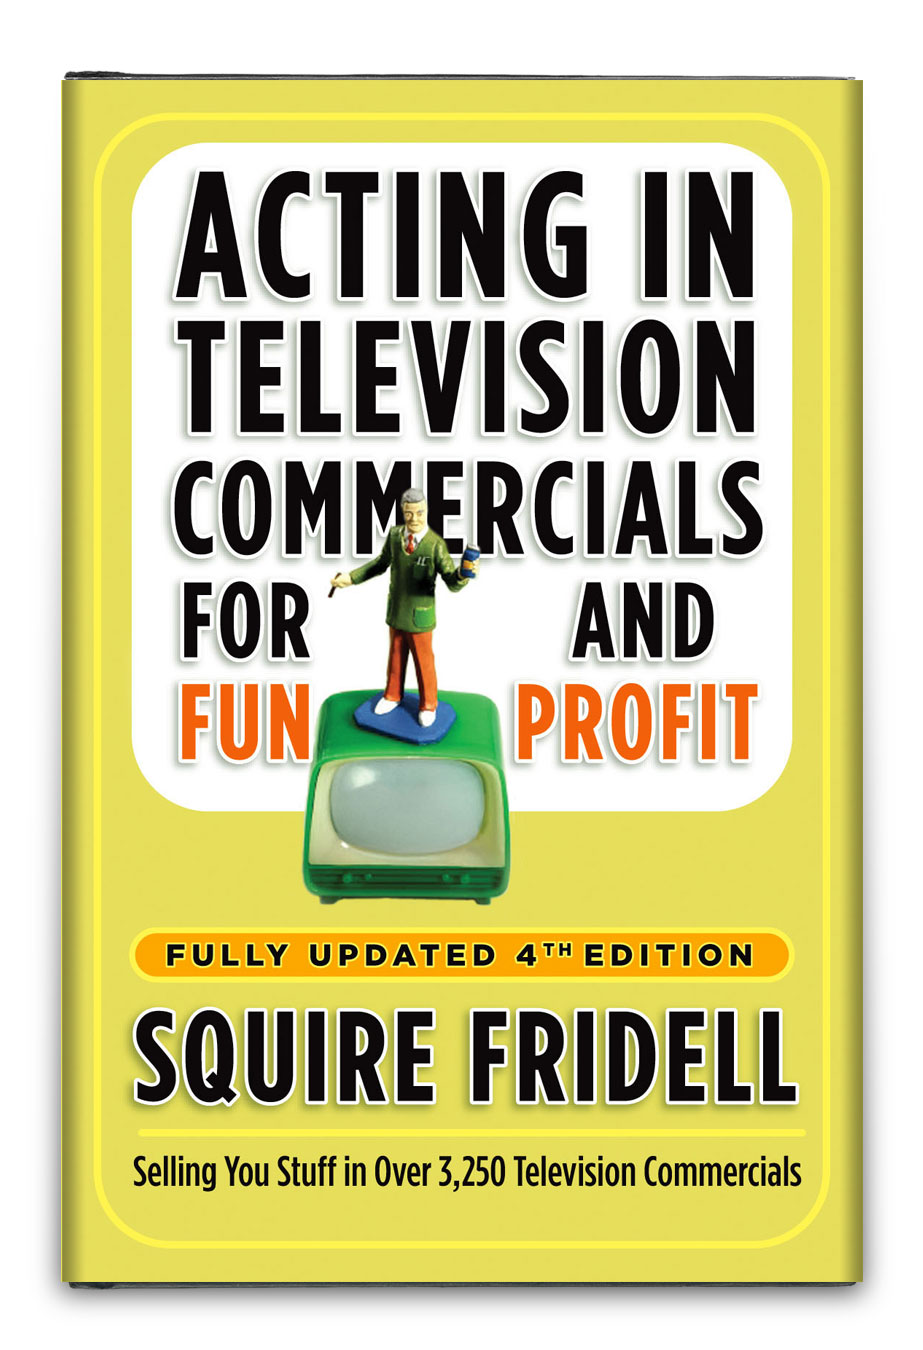 ACTING IN TELEVISION COMMERCIALS FOR FUN AND PROFIT